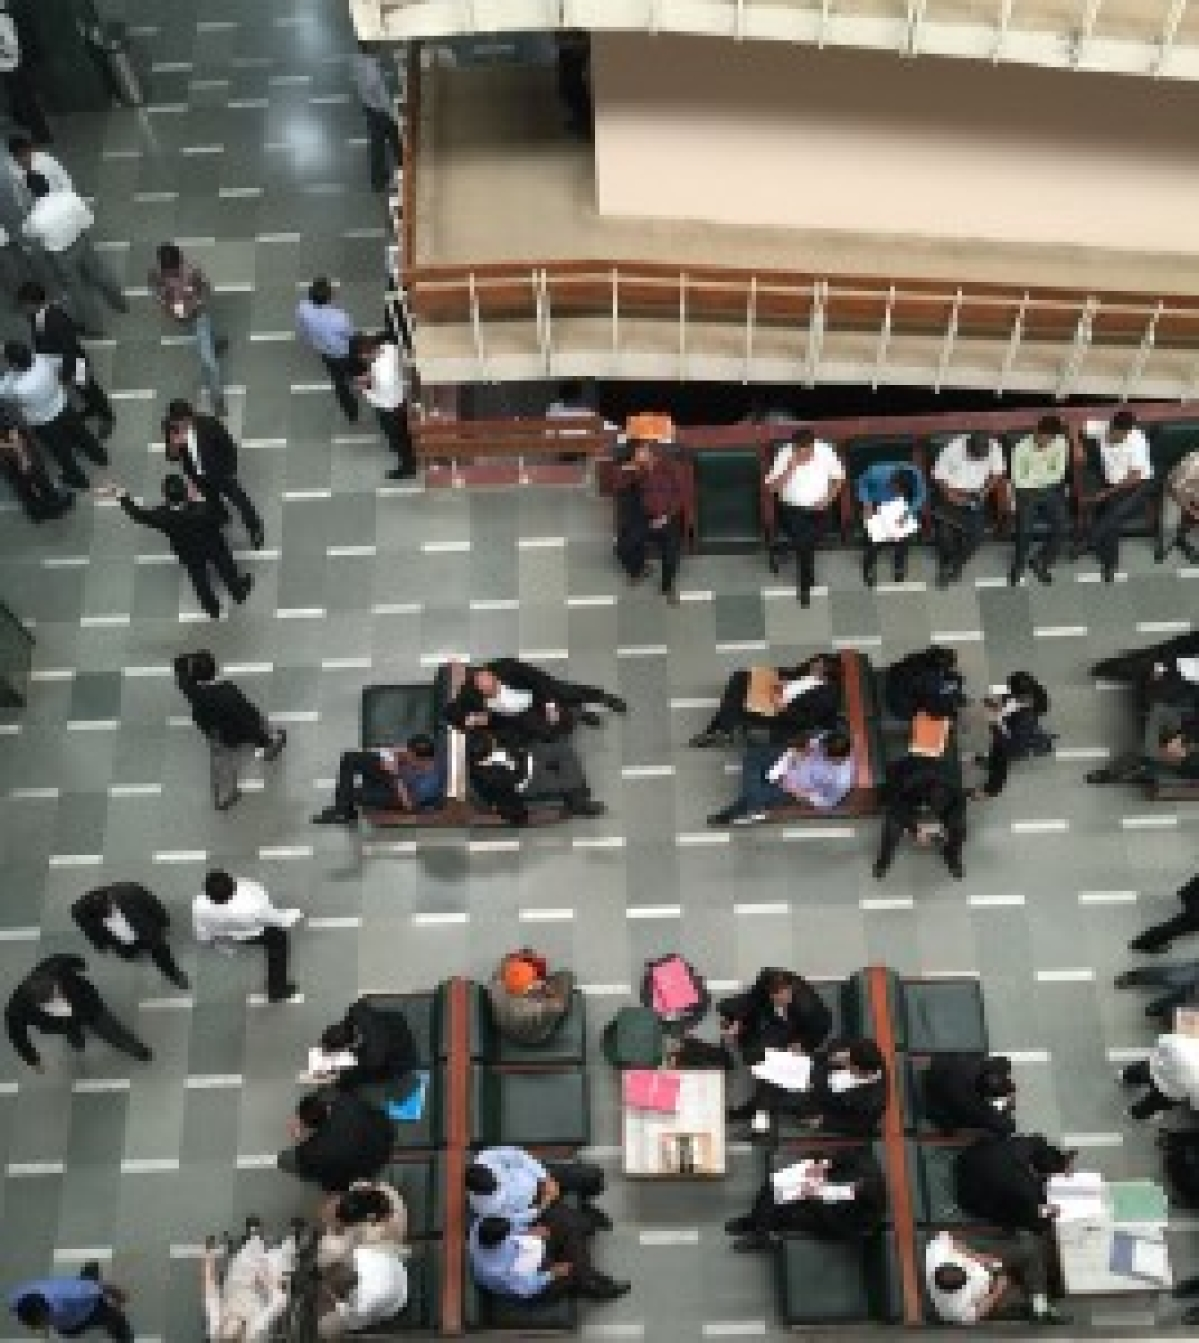 Clients and lawyers waiting in the Delhi High Court